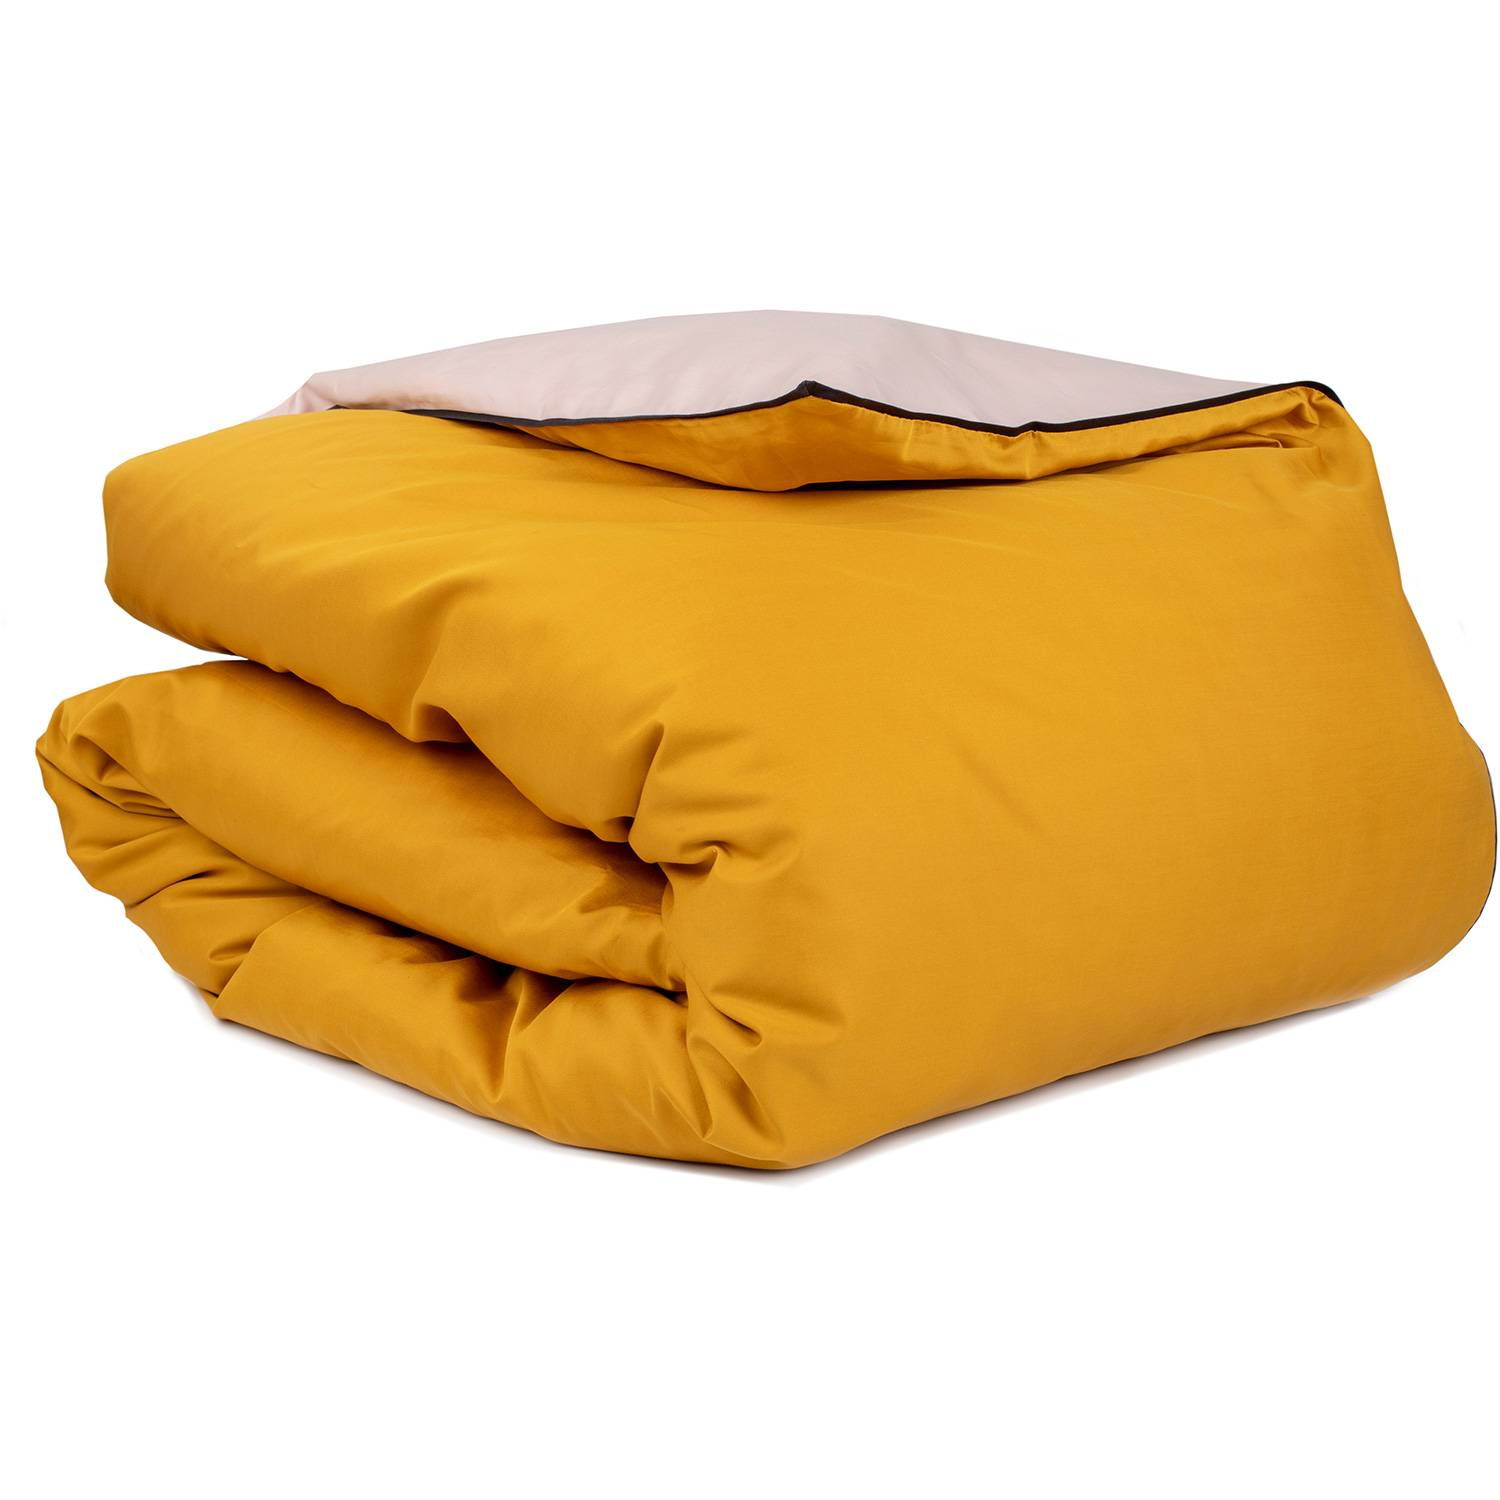 Mille Notti-Duetto Duvet Cover 140x200cm, Yellow/Light Pink